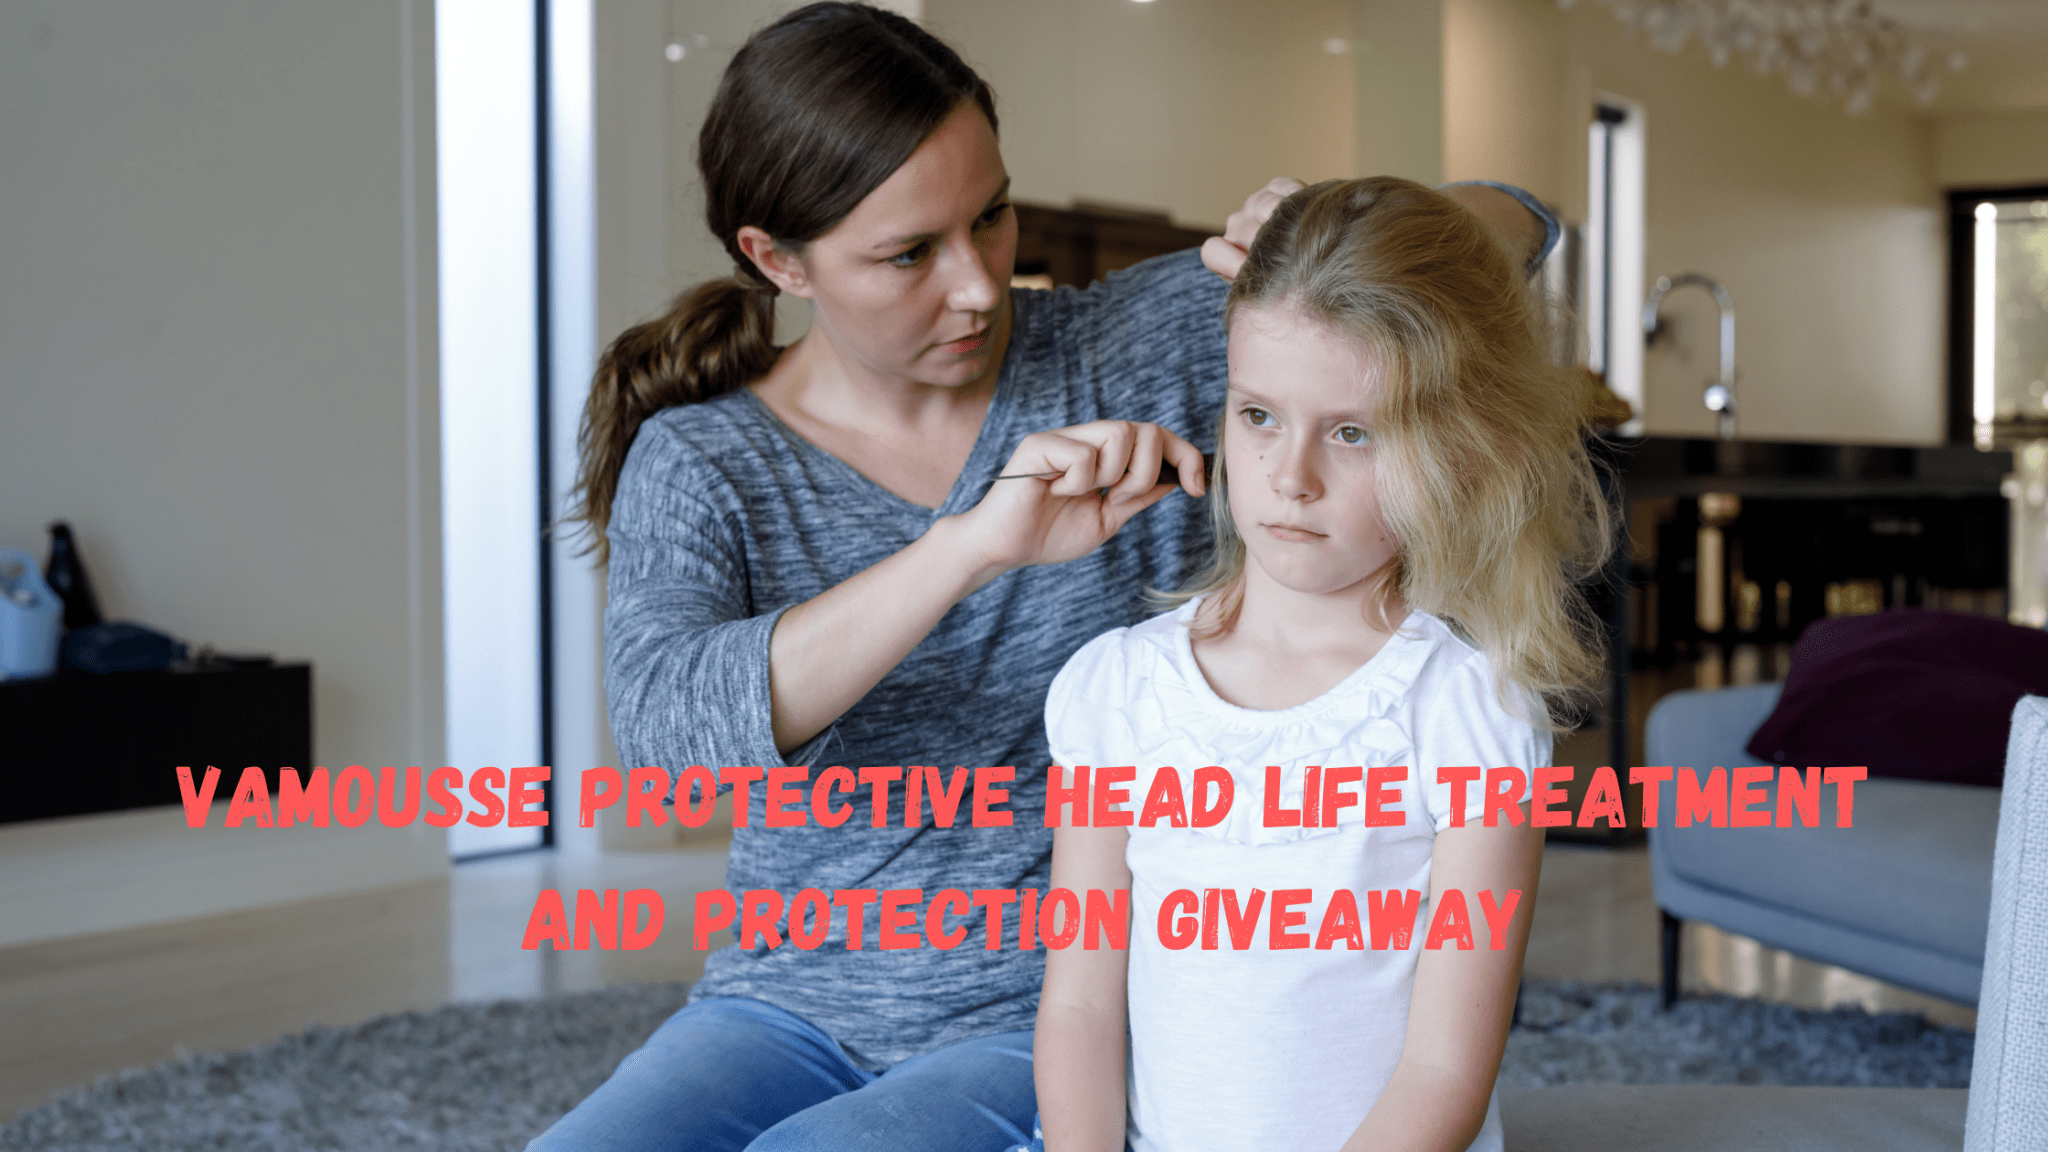 Vamousse Protective Head Life Treatment and Protection Giveaway